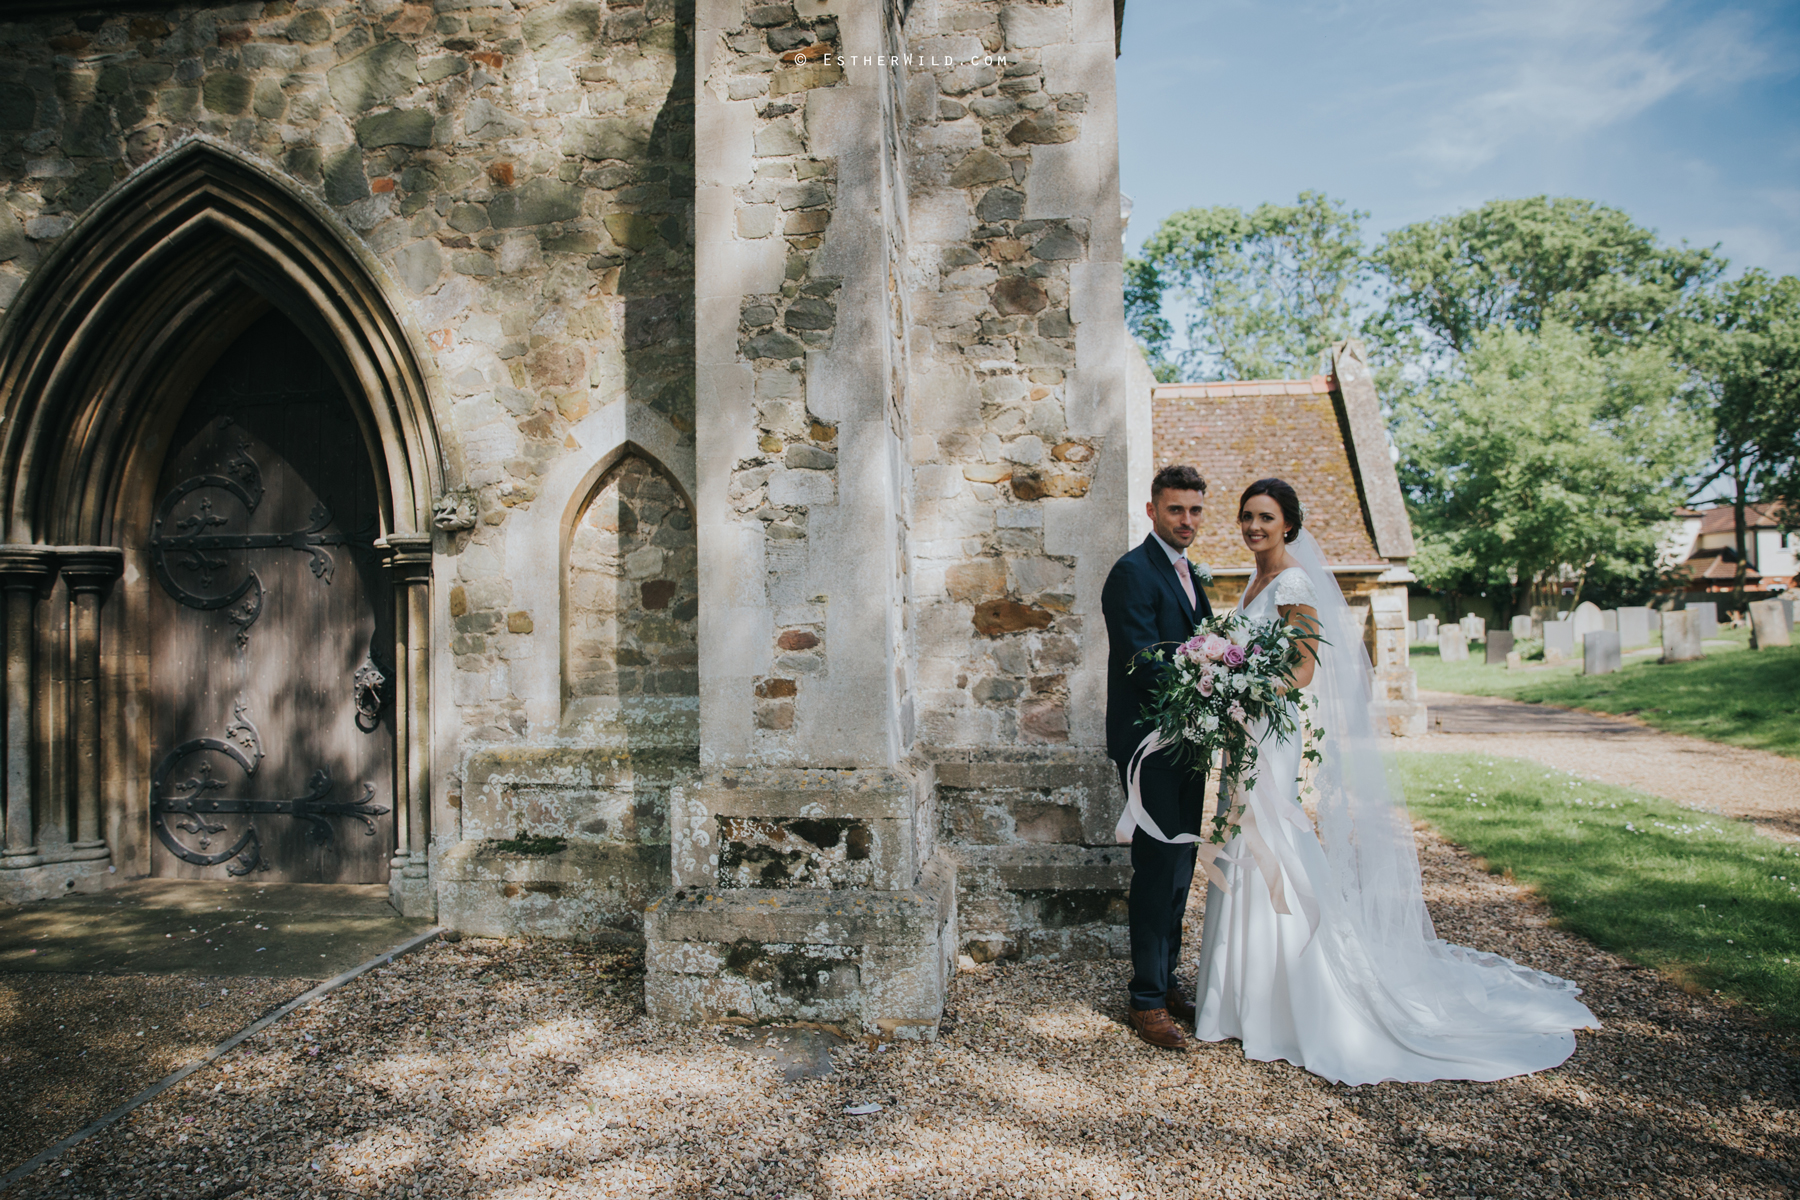 Wootton_Wedding_Copyright_Esther_Wild_Photographer_IMG_1461.jpg